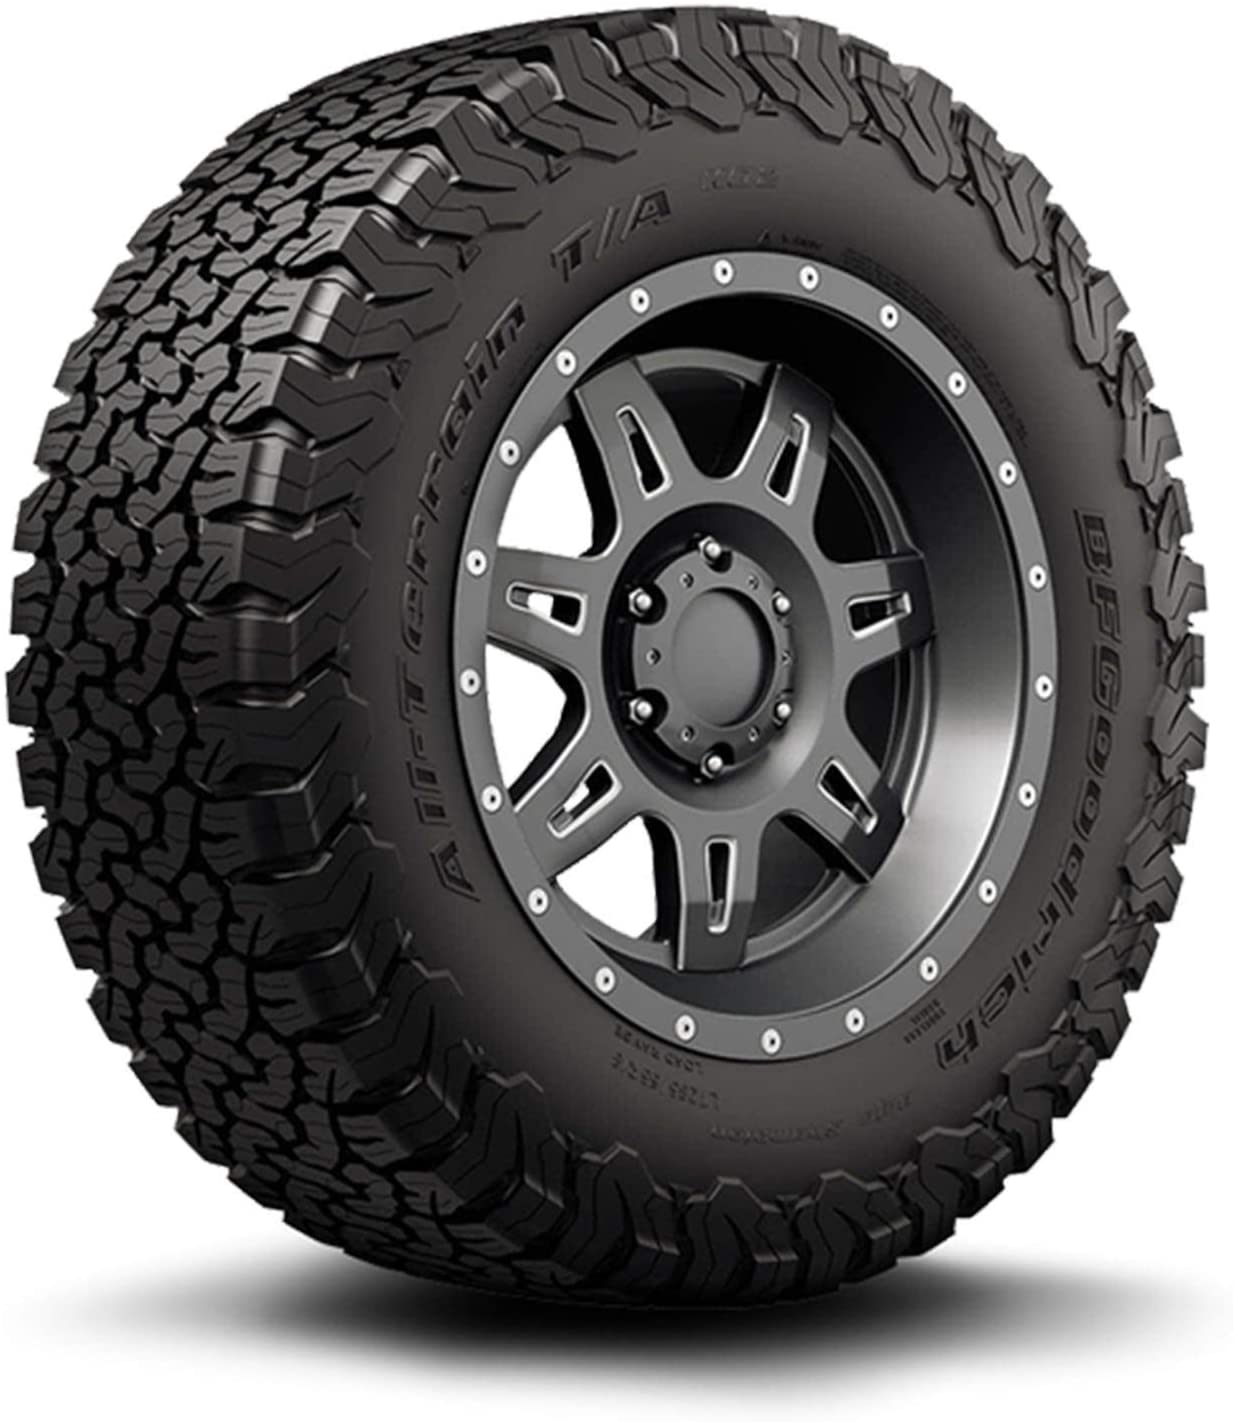 All-Terrain BFGoodrich T/A KO2 All-Season Radial Tire